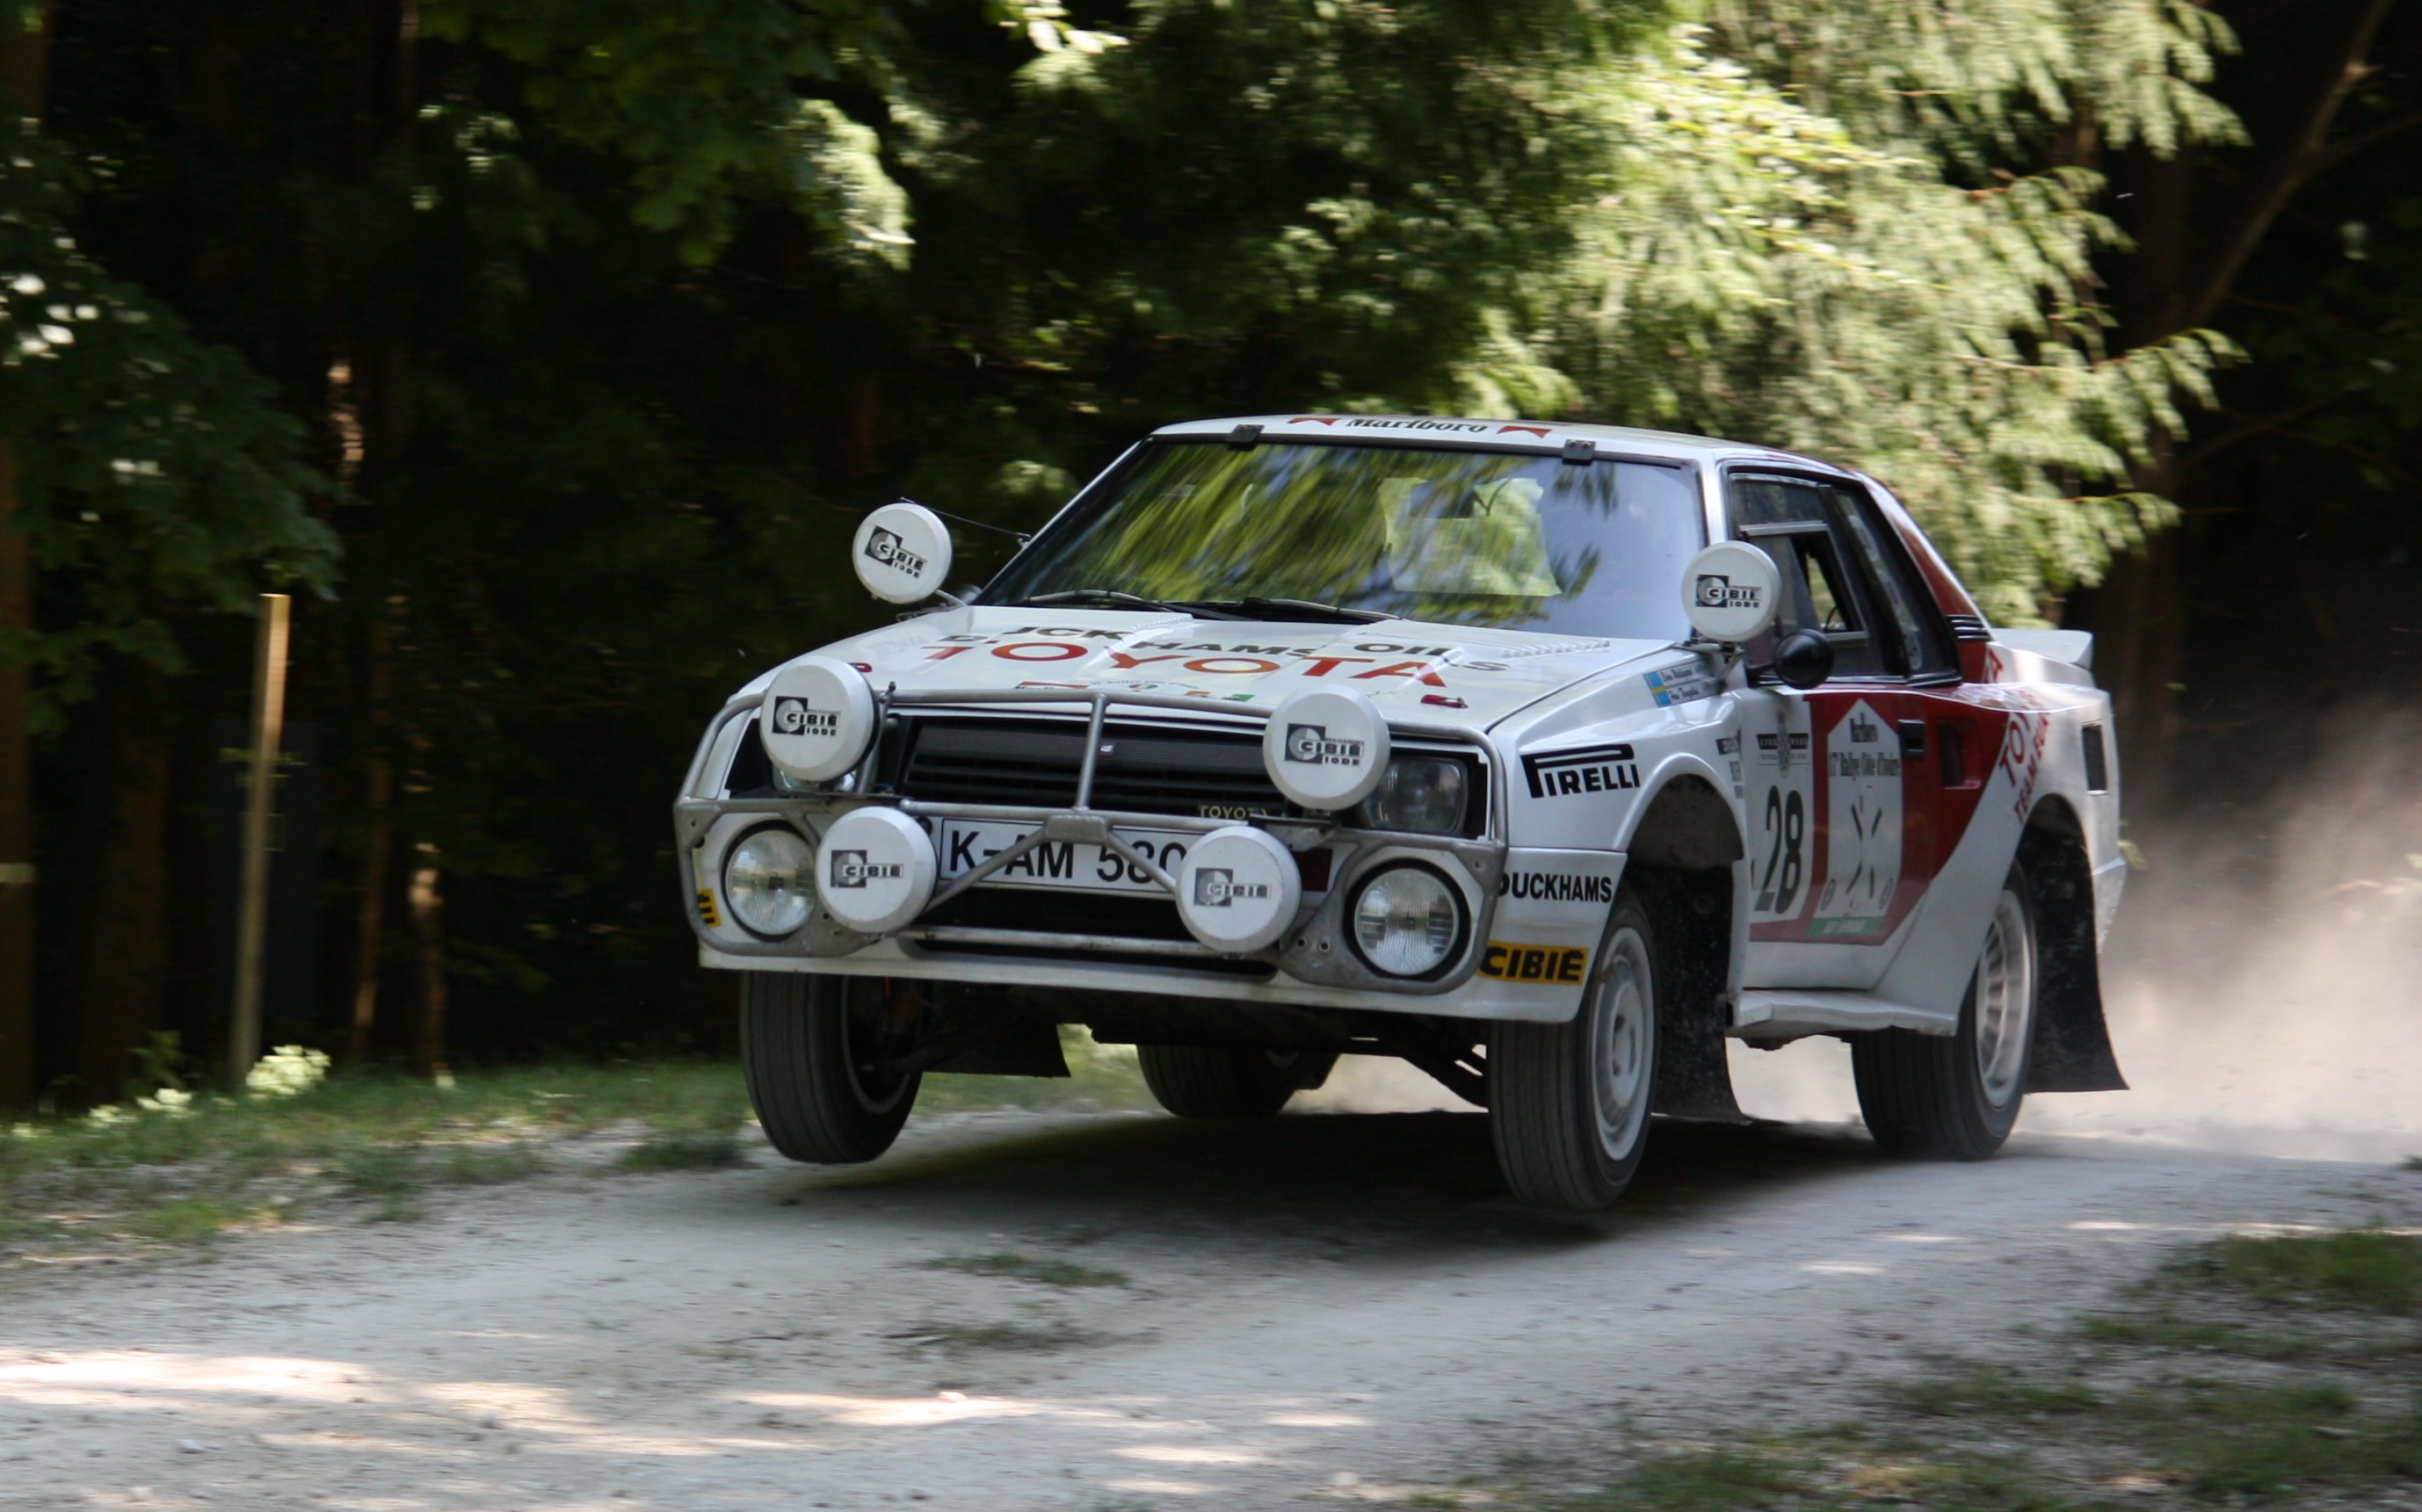 The Celica triumphed in every one of the six African rallies it entered